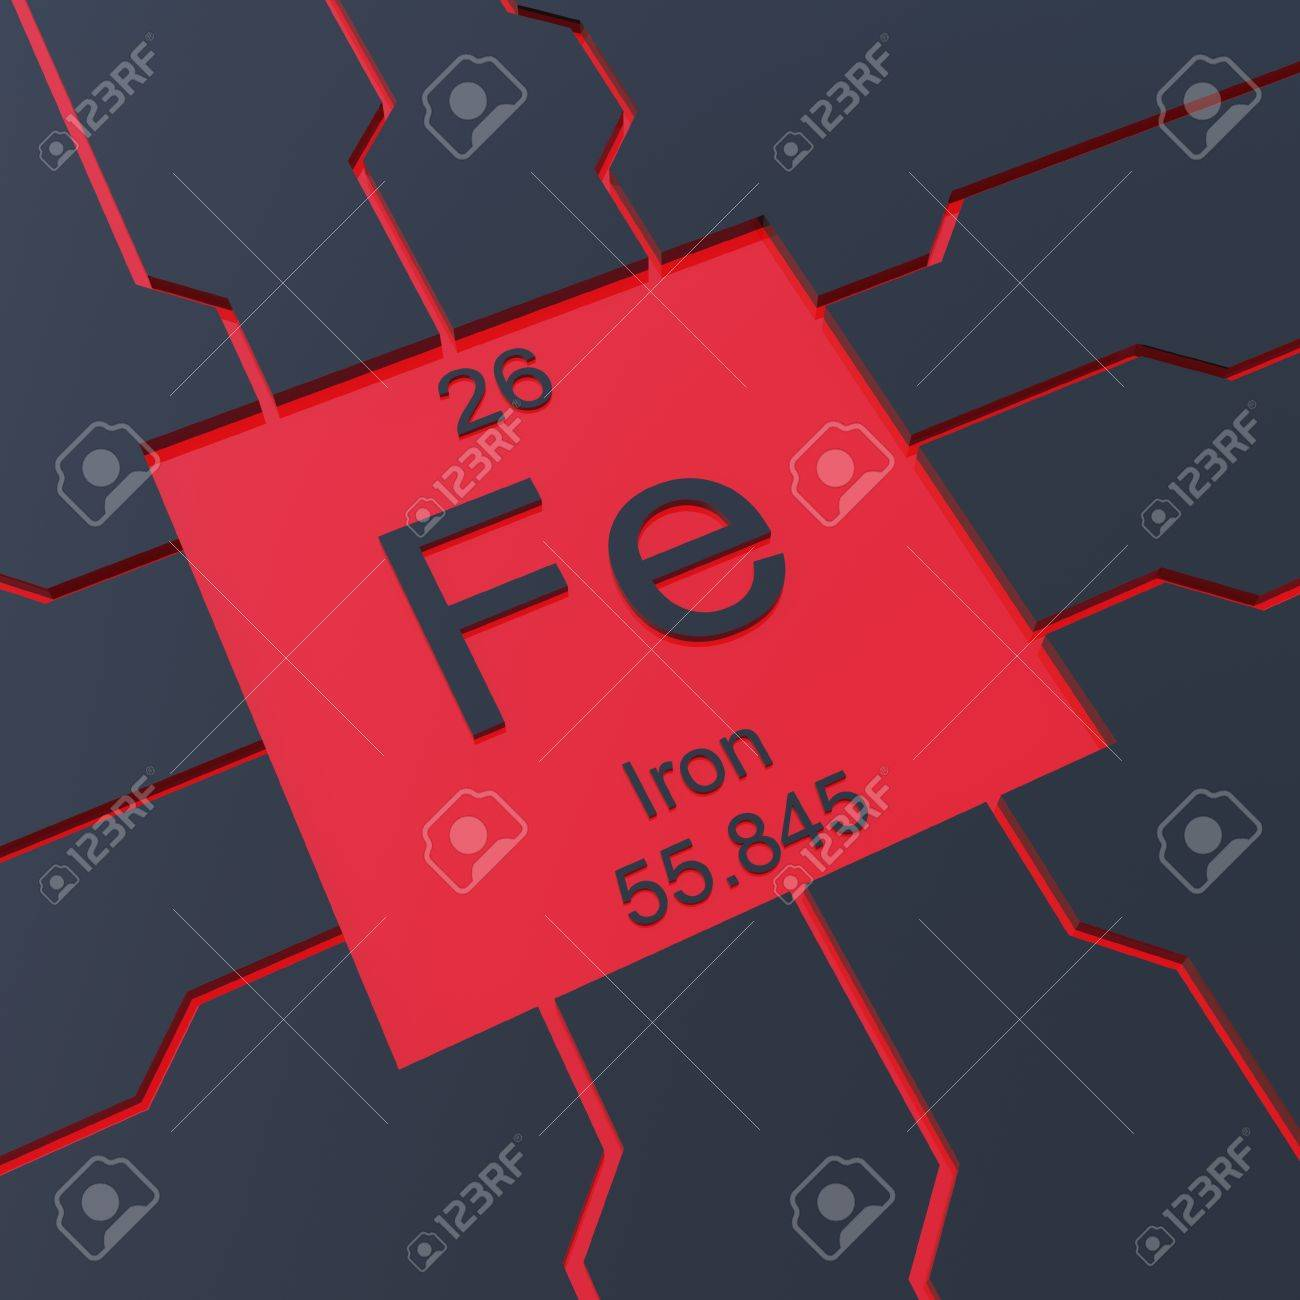 Iron symbol element from the periodic table stock photo picture iron symbol element from the periodic table stock photo 31217741 gamestrikefo Image collections